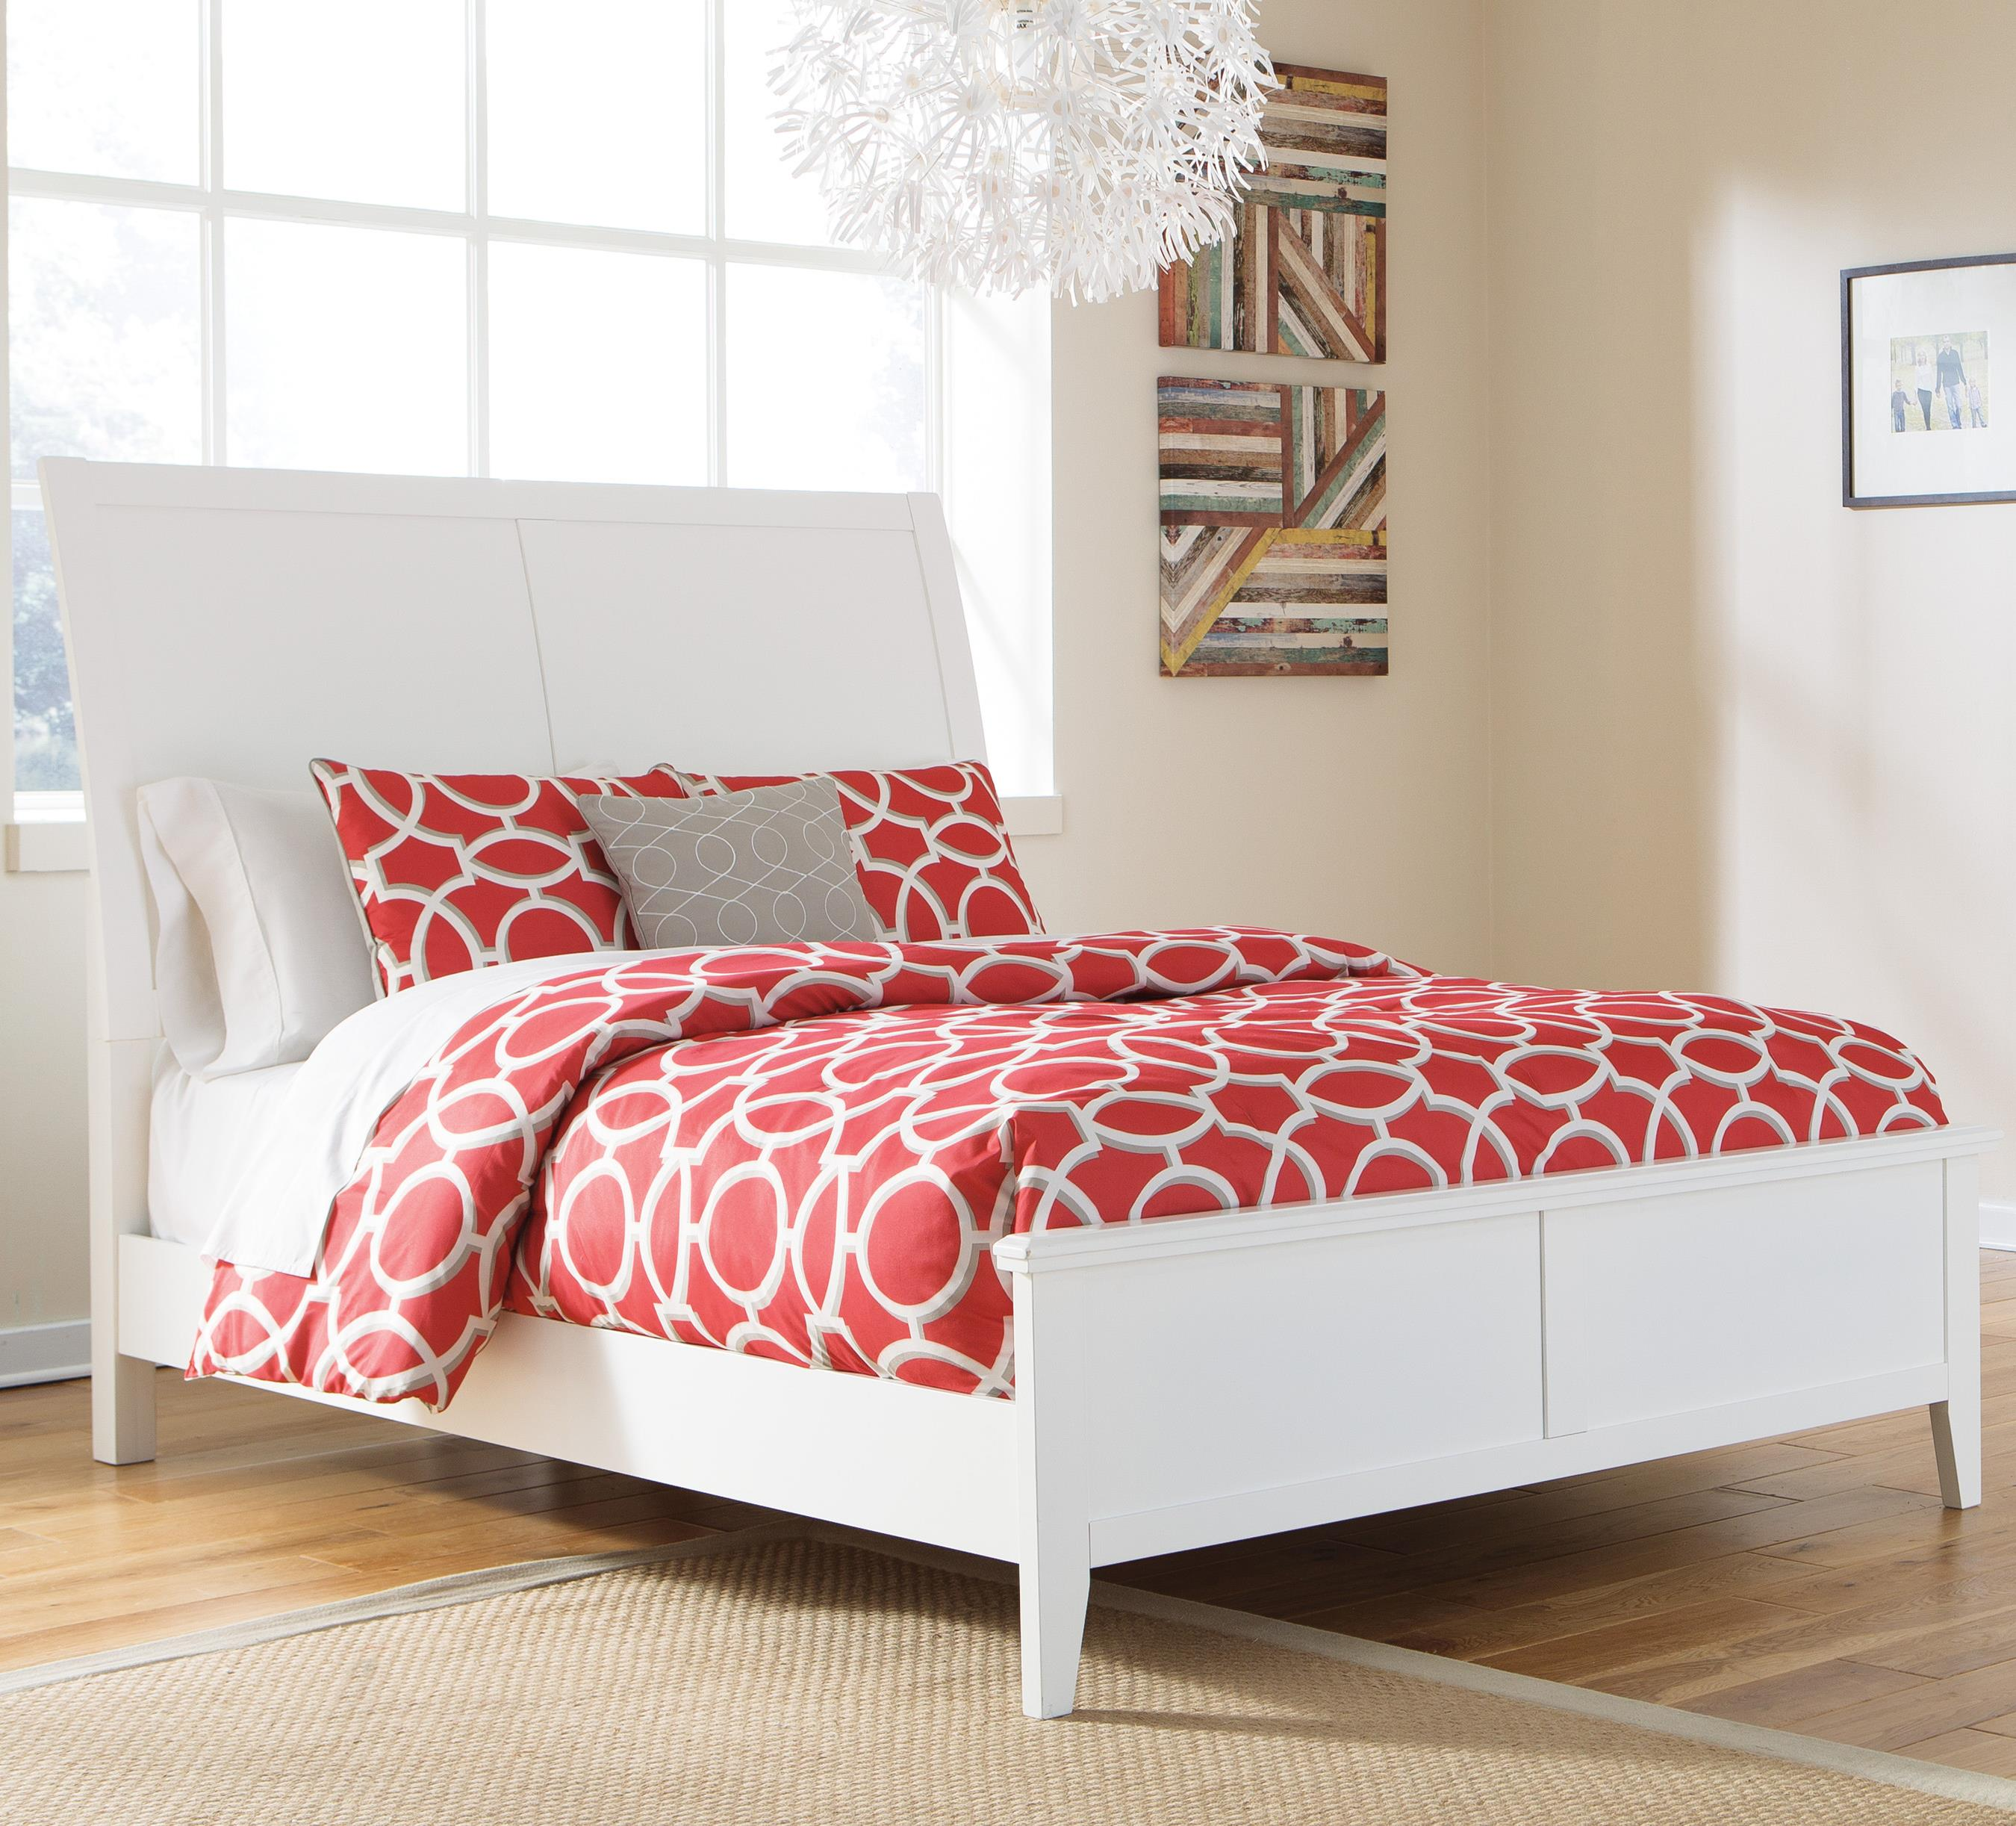 Signature Design by Ashley Langlor Cal King Bed with Sleigh Headboard - Item Number: B592-58+94